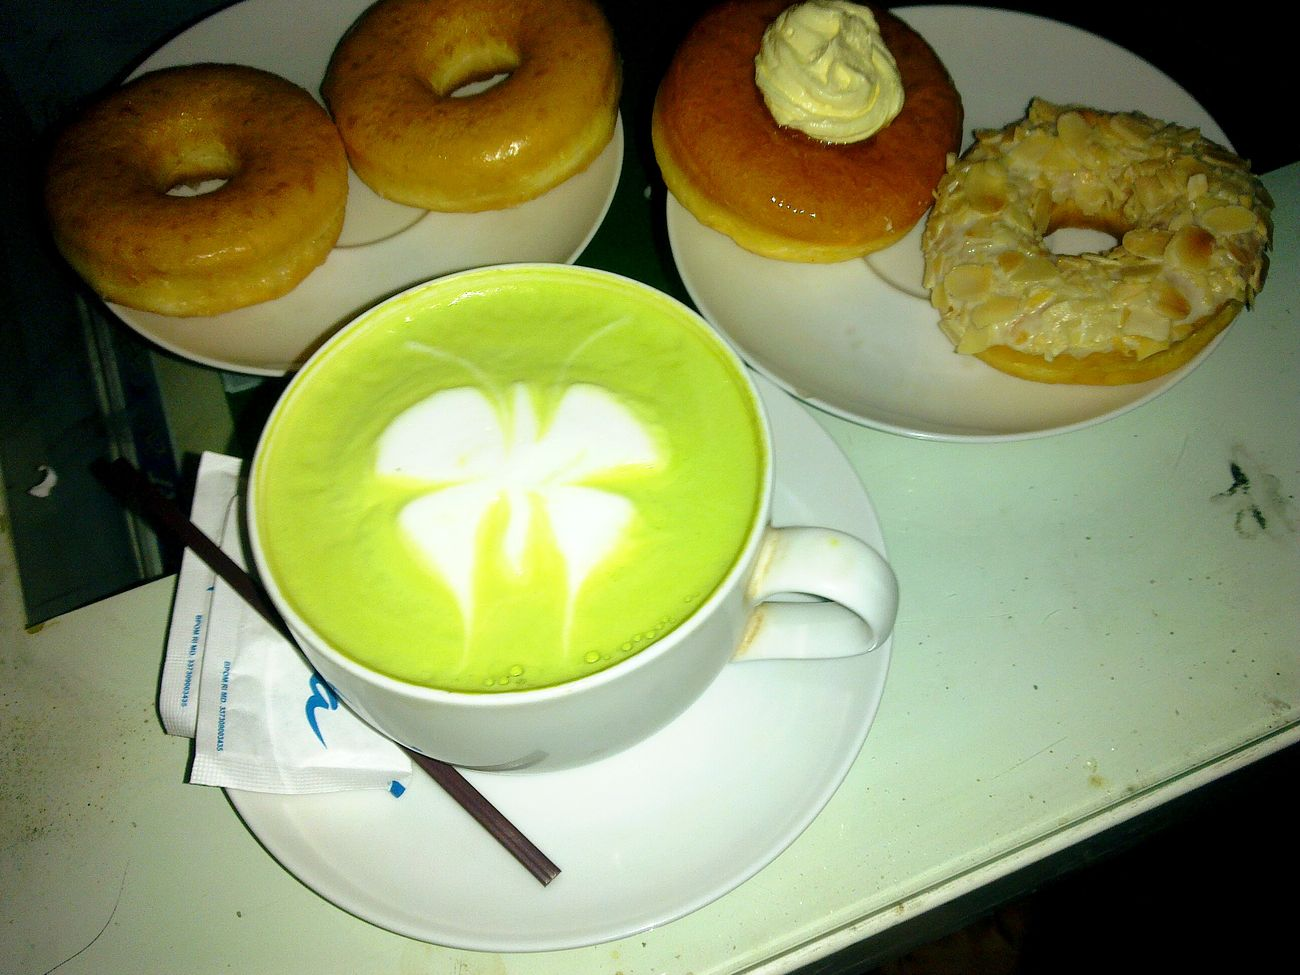 Green tea latte Donuts Enjoying Life Hanging Out The Foodie - 2015 EyeEm Awards Food Porn Awards